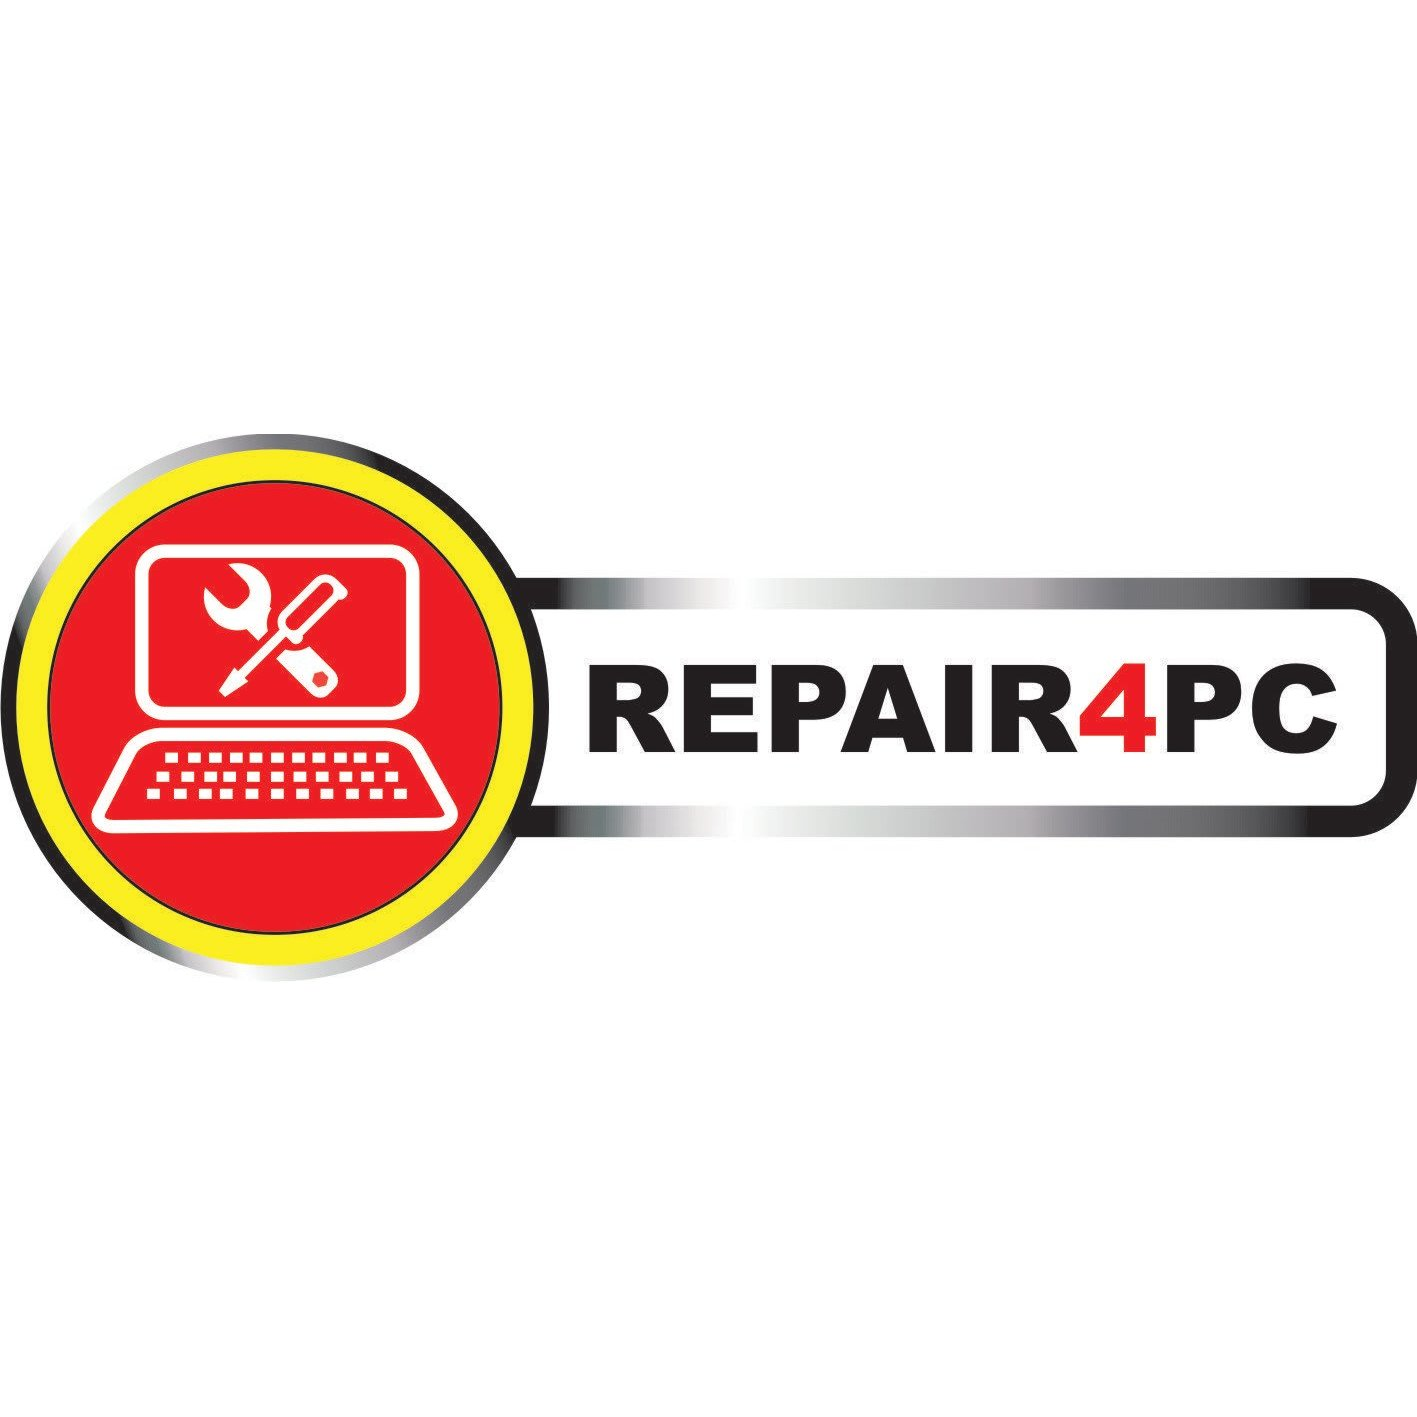 Repair 4 PC - Brierley Hill, West Midlands DY5 1HD - 01384 481110 | ShowMeLocal.com